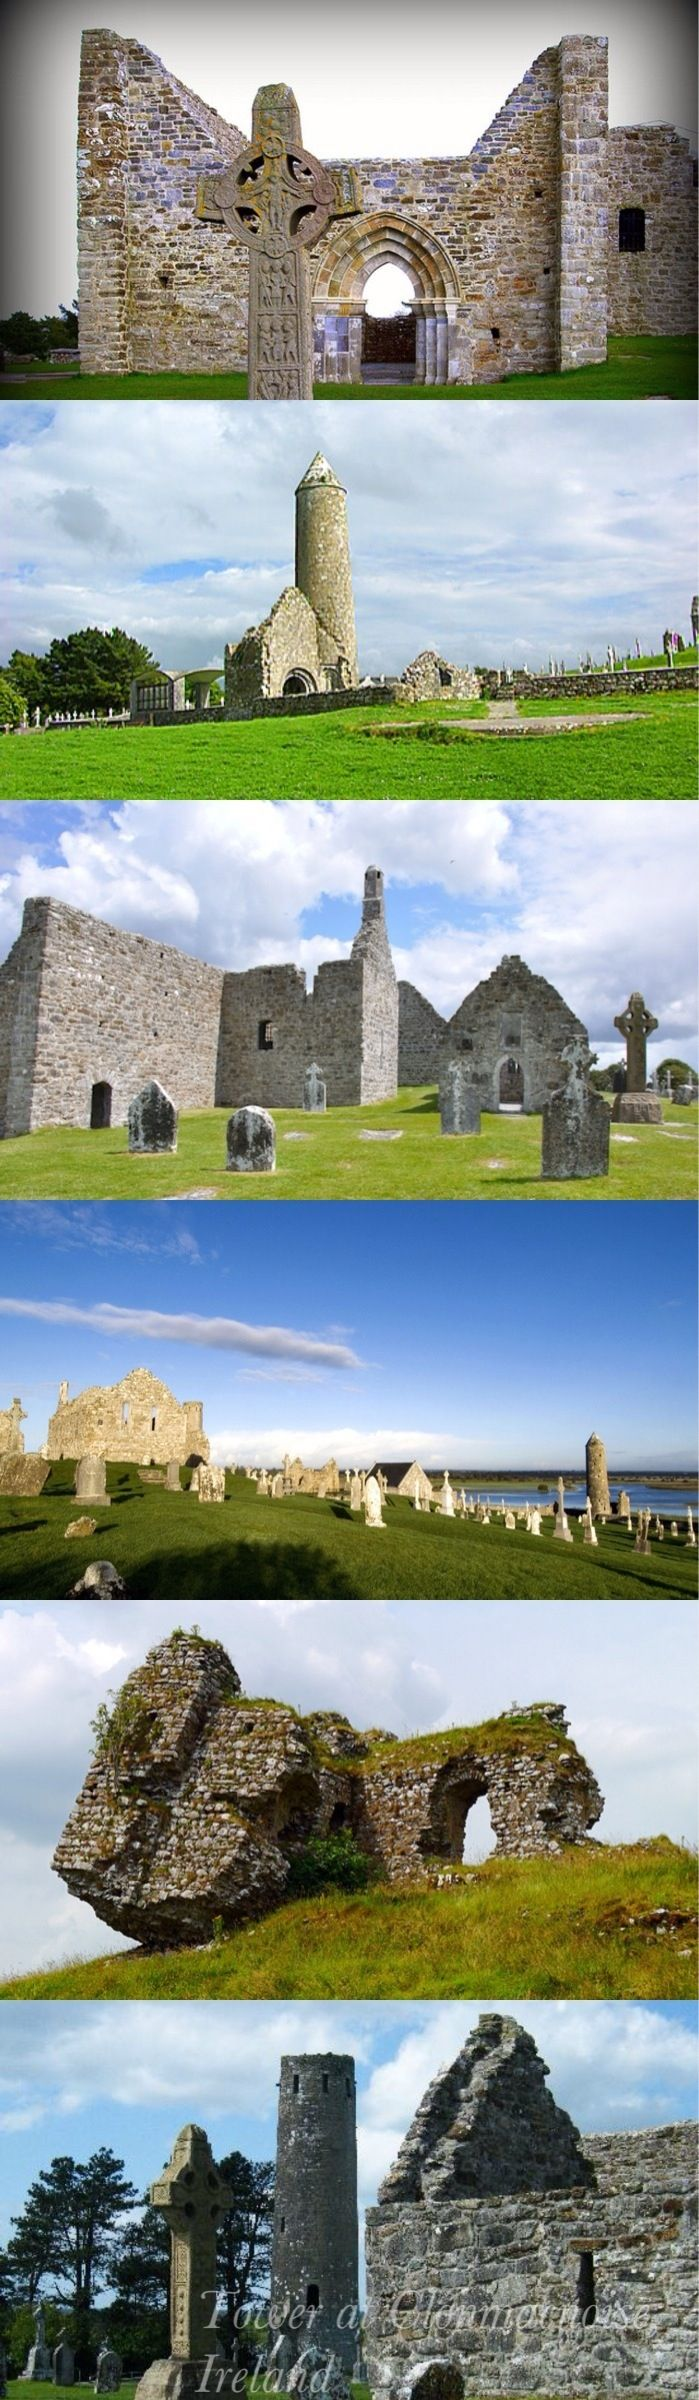 """The monastery of Clonmacnoise (Cluain Mhic Nóis in Irish, meaning """"Meadow of the Sons of Nós"""" is situated in County Offaly, Ireland on the River Shannon south of Athlone. The strategic location of the monastery helped it become a major centre of religion, learning, craftsmanship, and trade."""